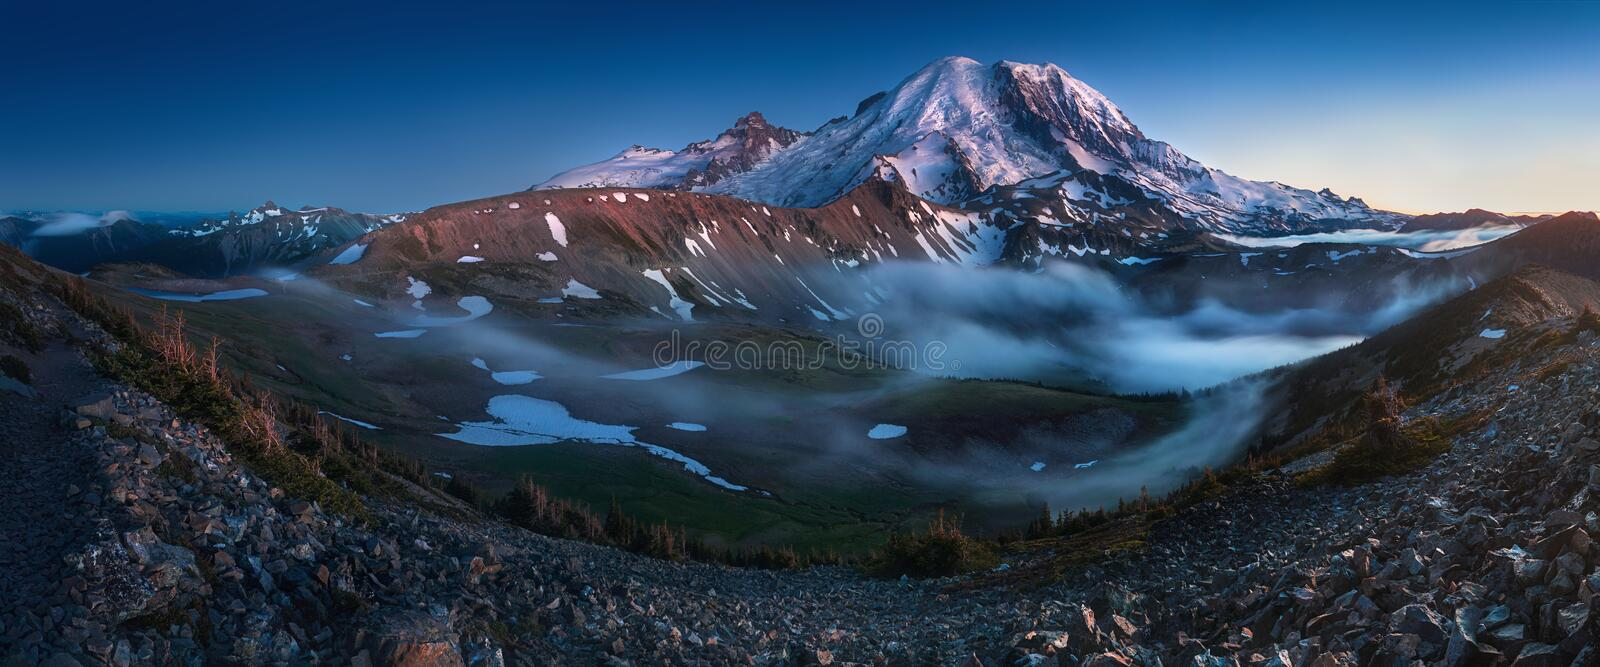 Mount Rainier in the dusk at Mount Rainier National Park, Washington State, USA. Beautiful landscape background concept stock photo